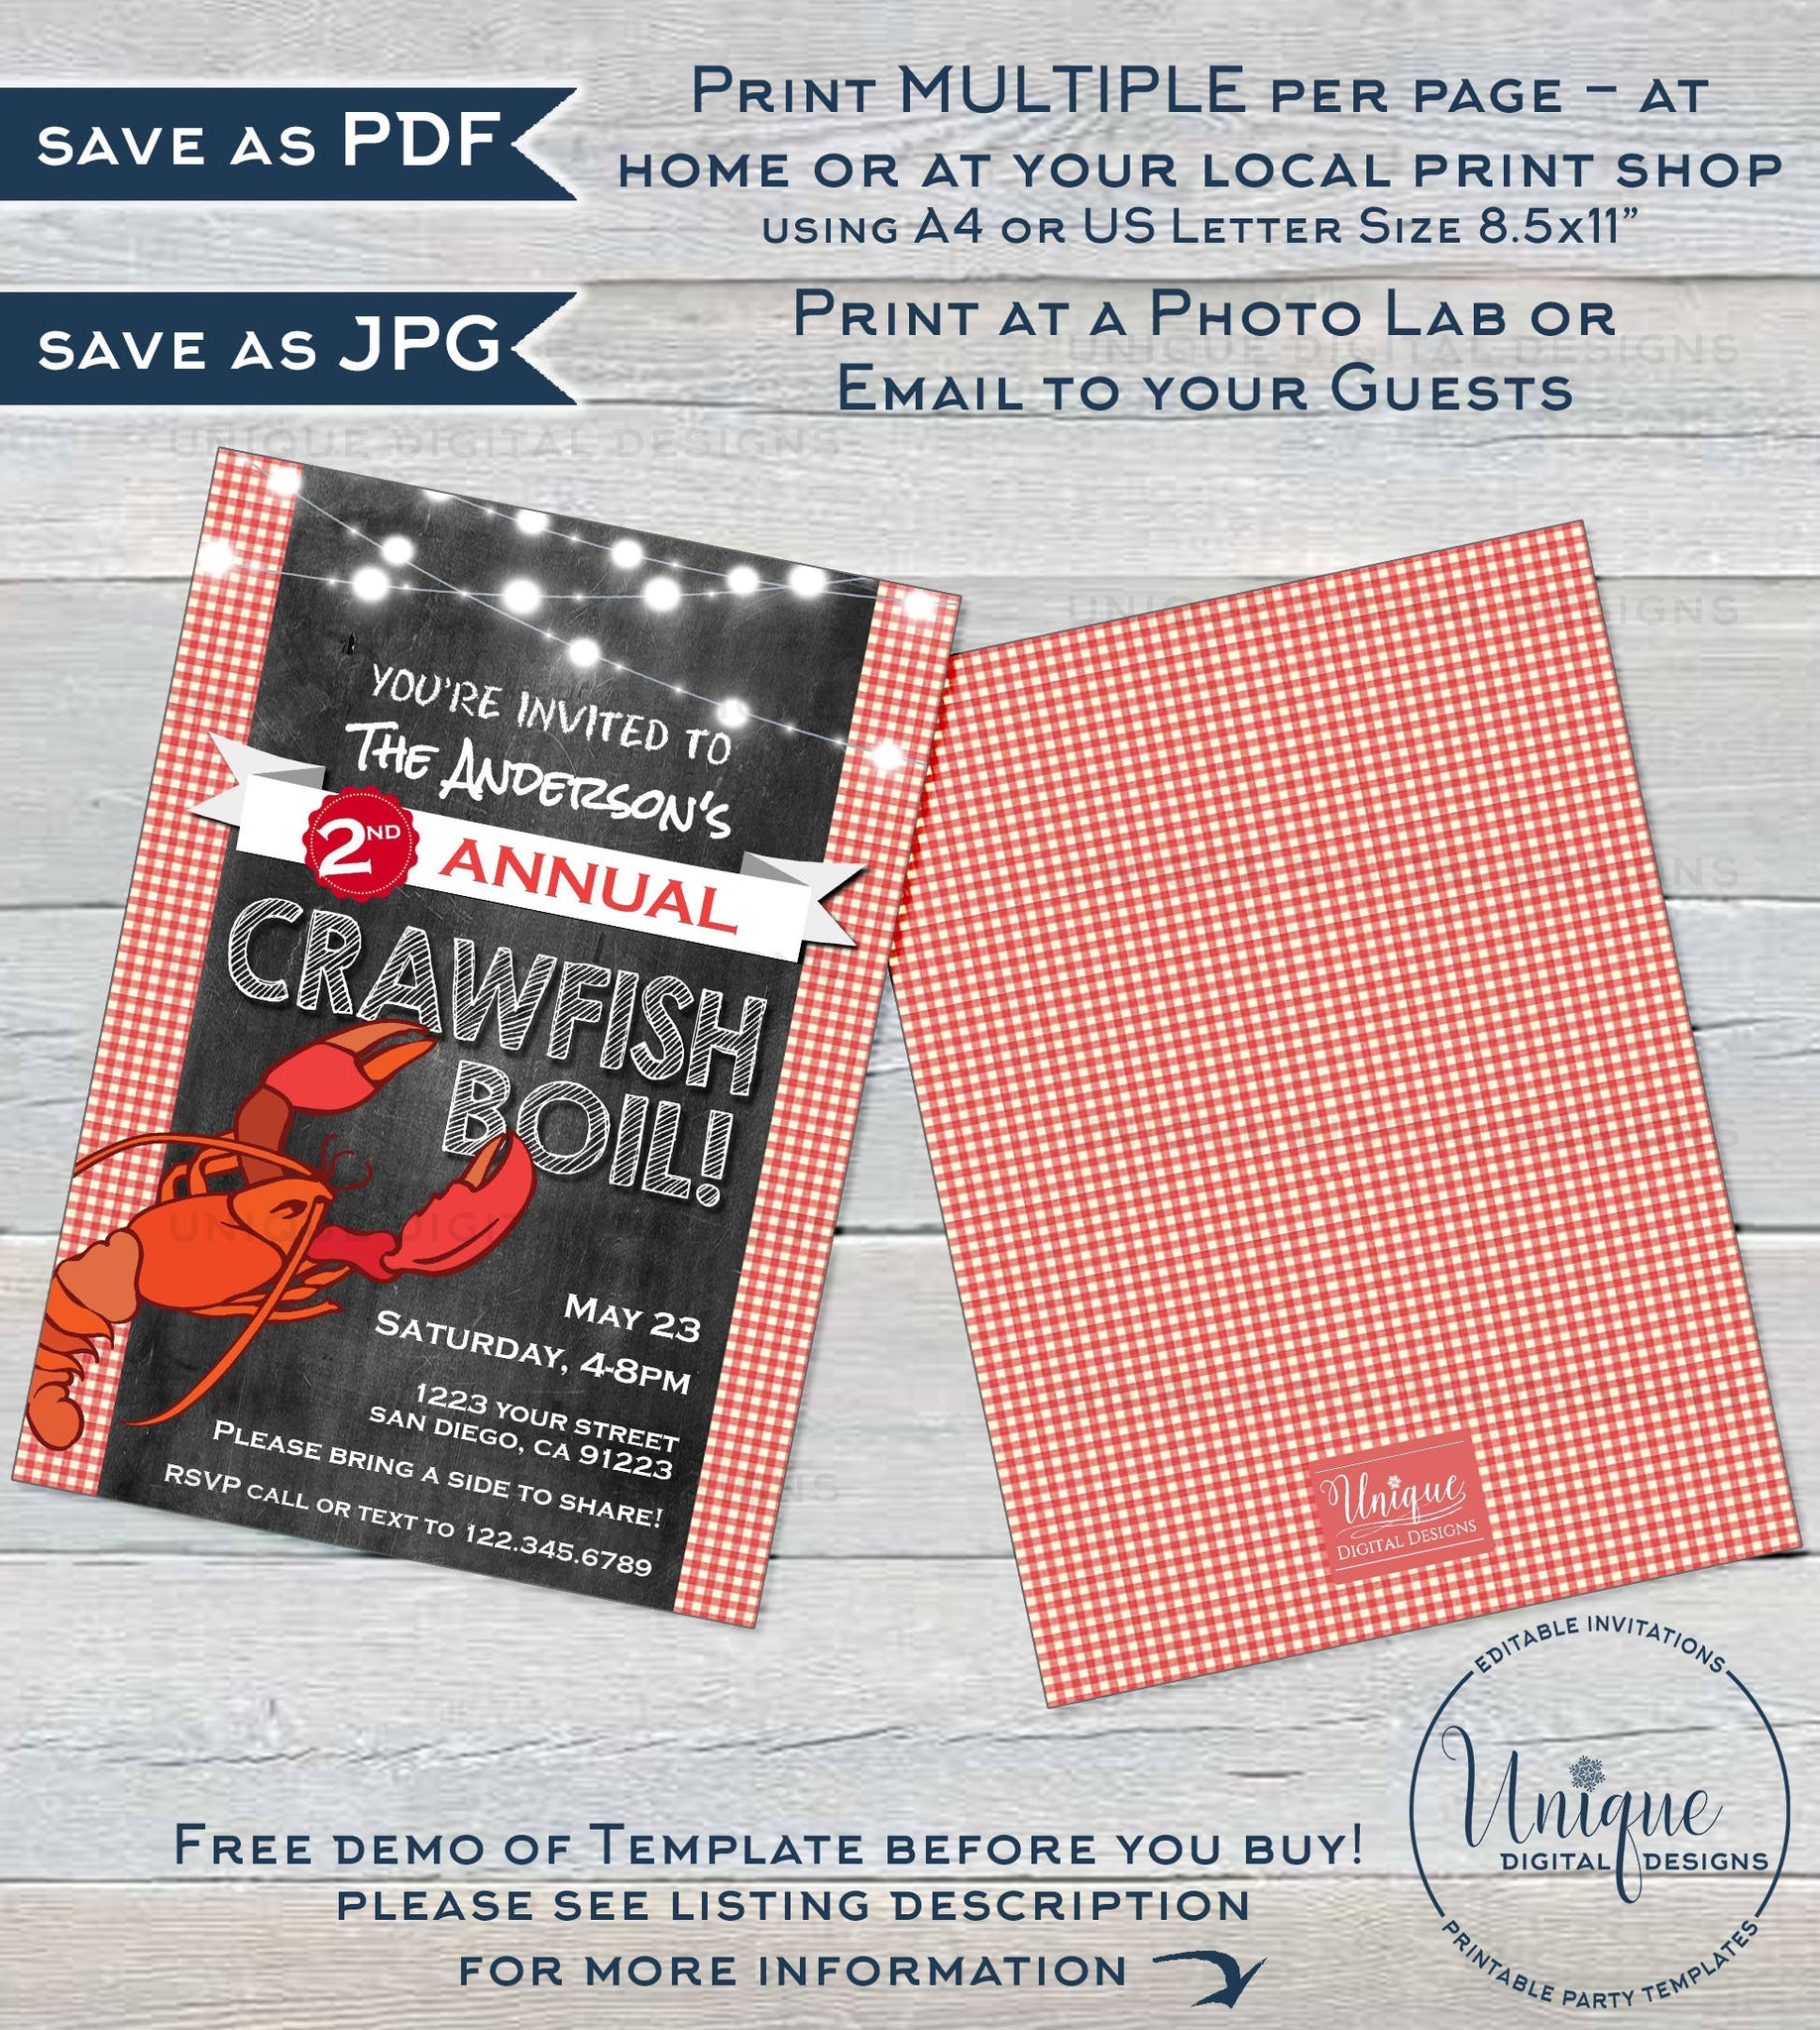 photograph relating to Crawfish Boil Invitations Free Printable called Crawfish Boil Invitation, Editable Beers and Boil